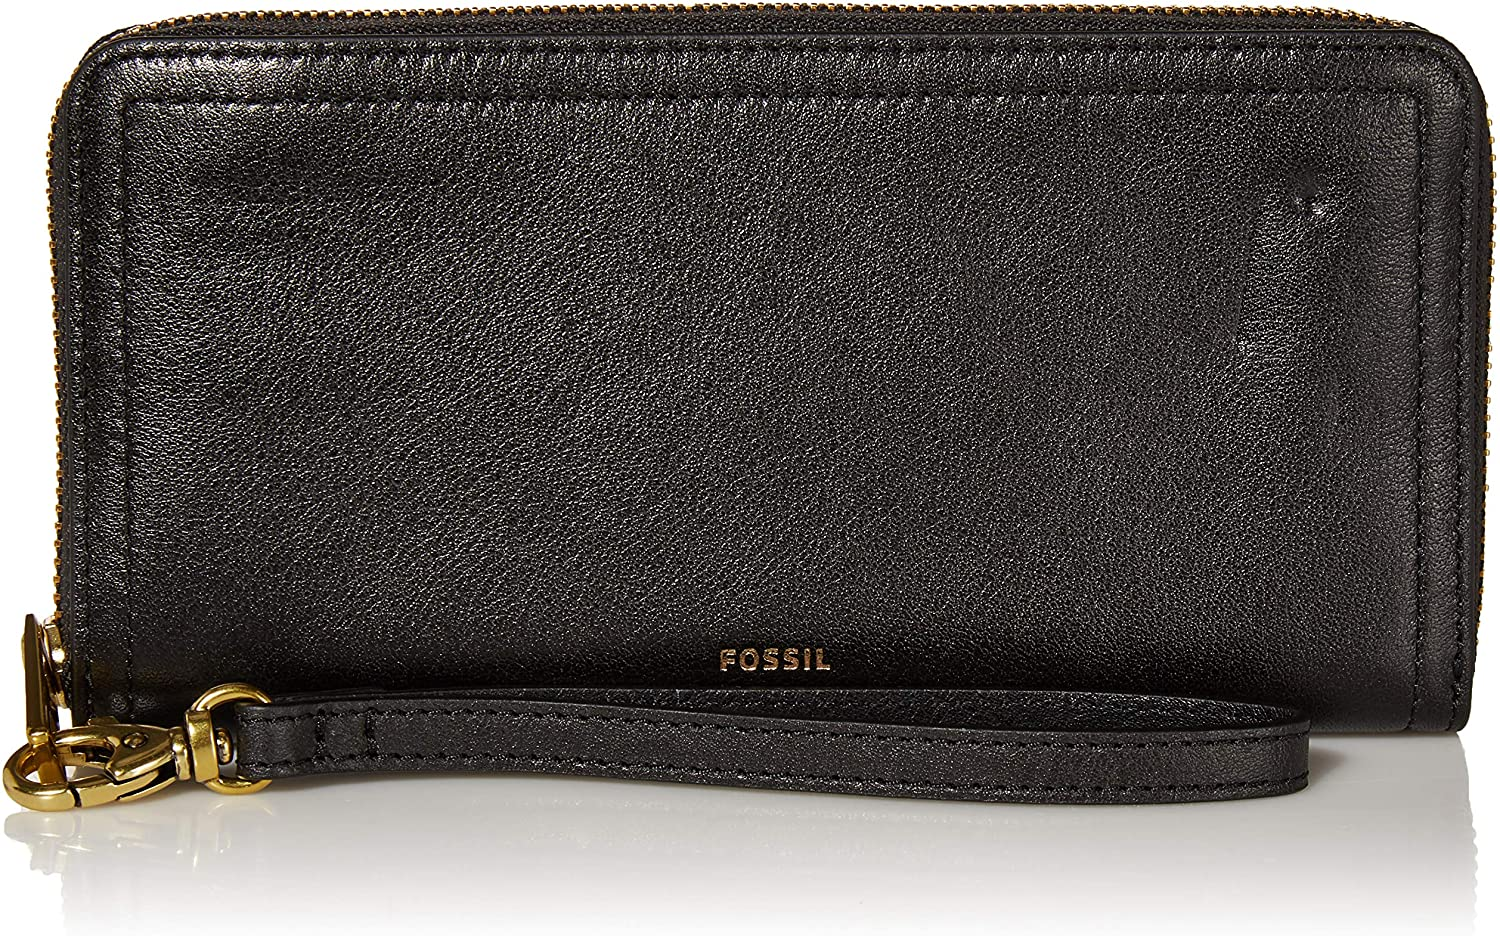 Fossil Women's Logan RFID-Blocking Leather Zip-Around Clutch Wallet with Wristlet Strap